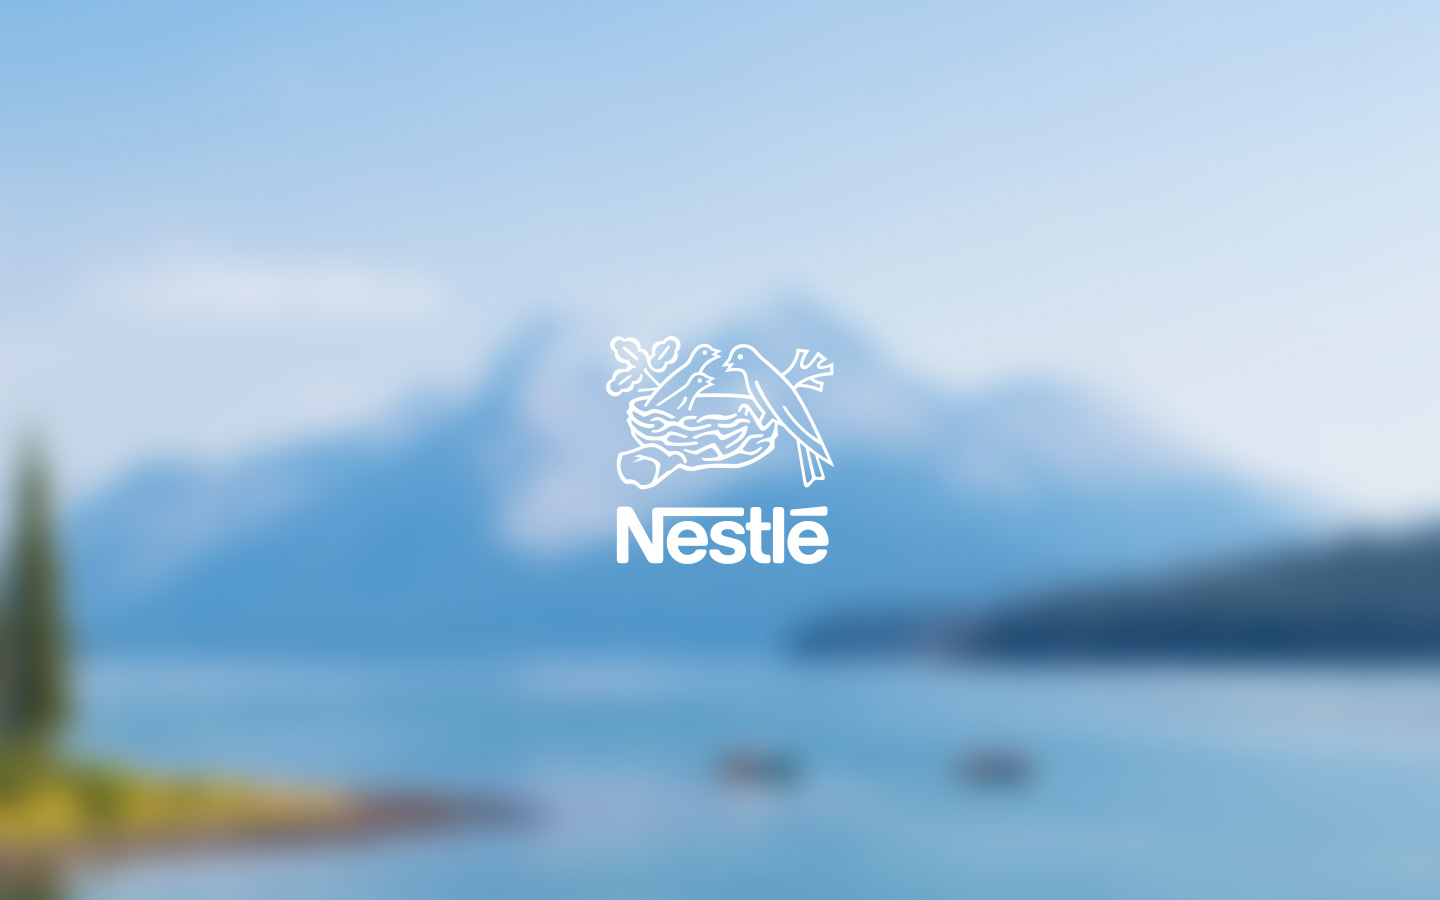 Nestle Wallpaper HD Full HD Pictures Pictureicon 1440x900